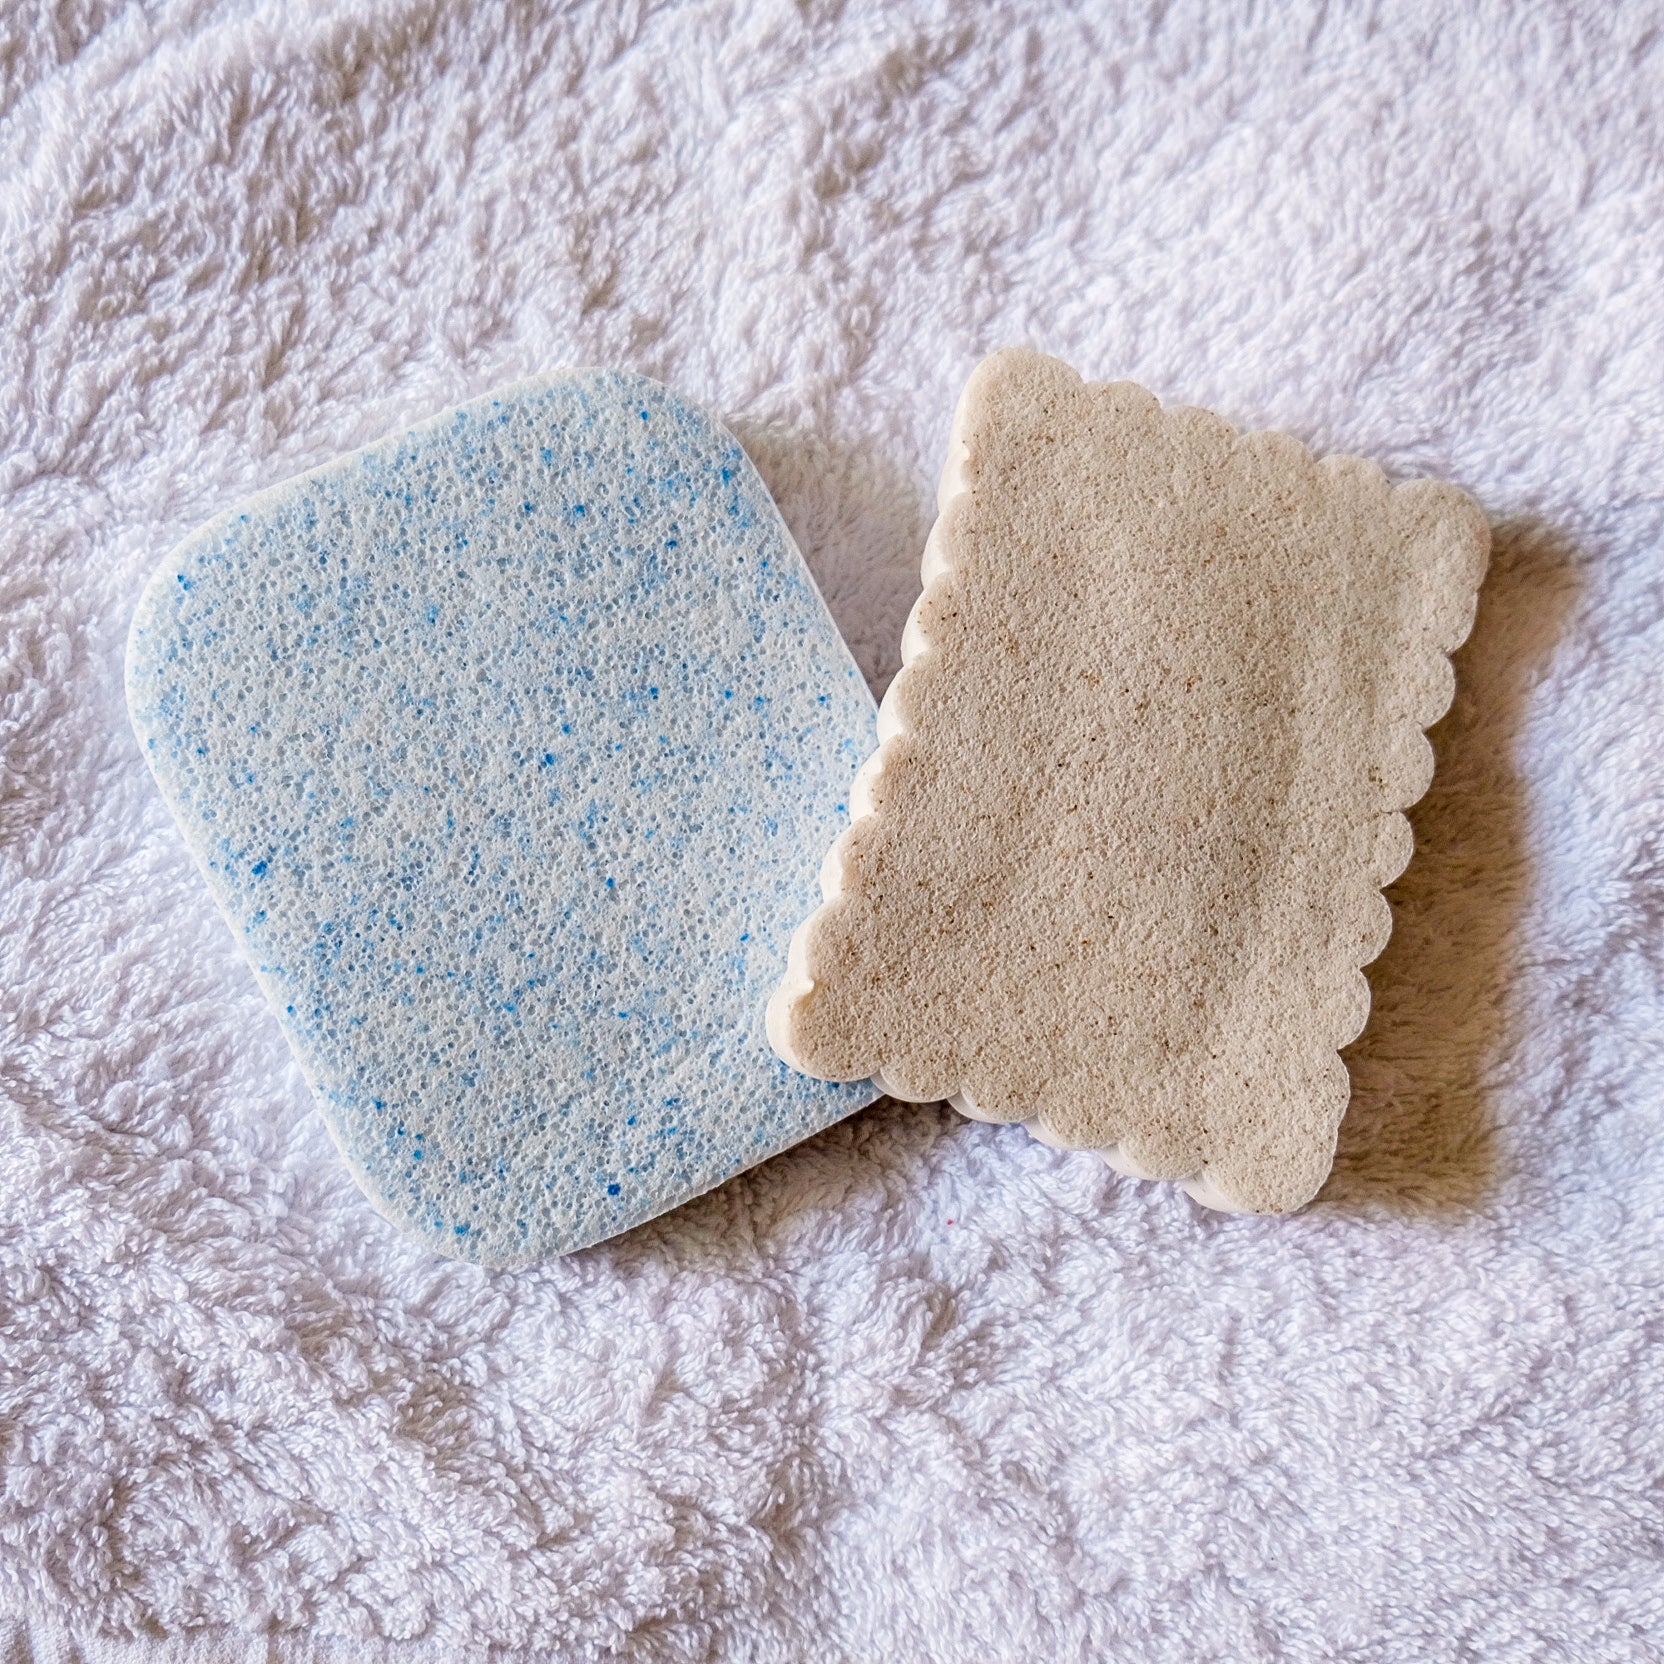 Facial Cleansing Sponge